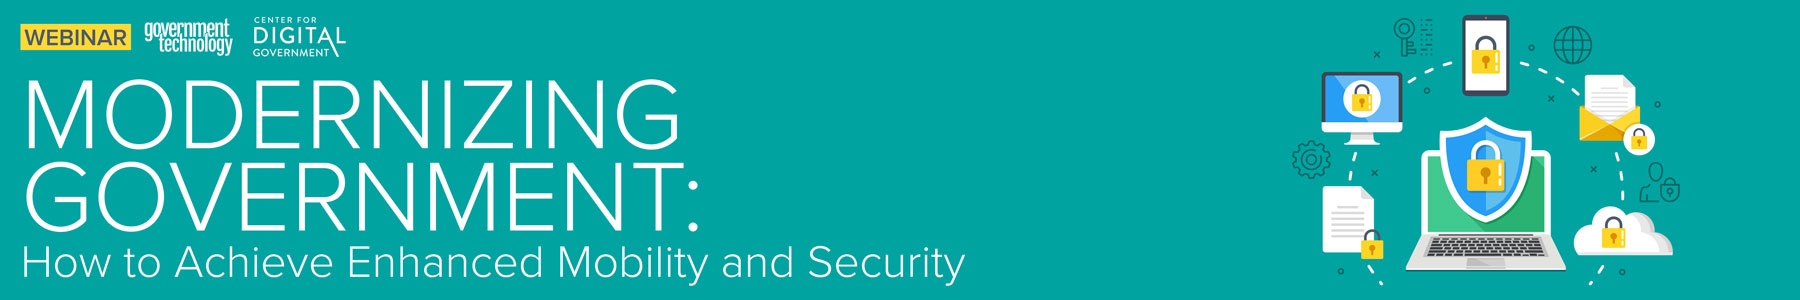 Modernizing Government: How to Achieve Enhanced Mobility and Security